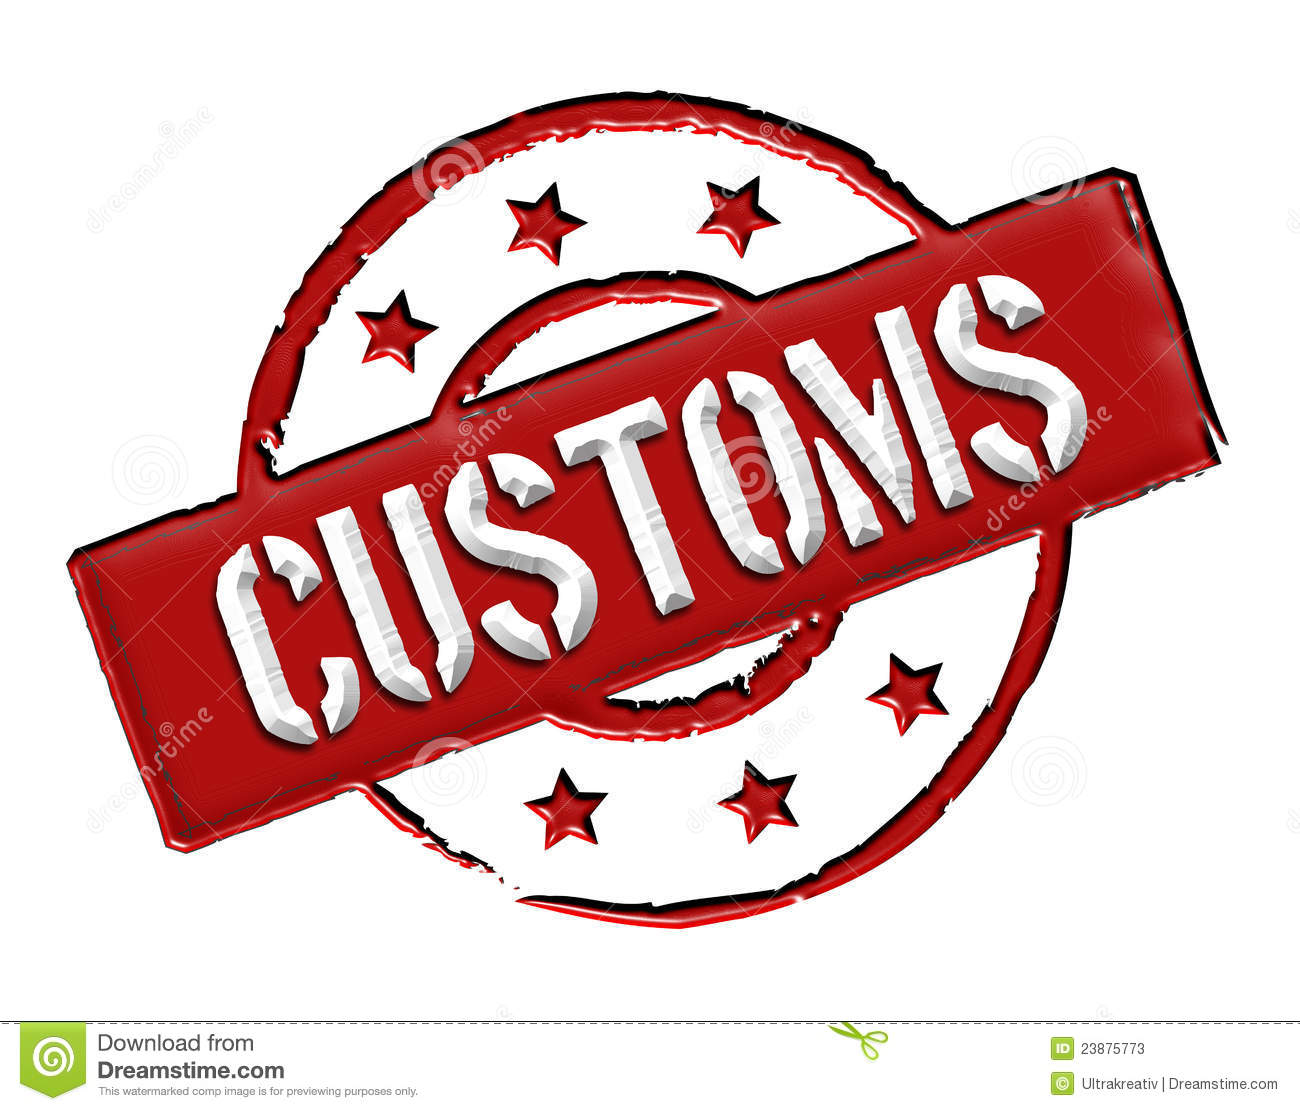 Customs - Red